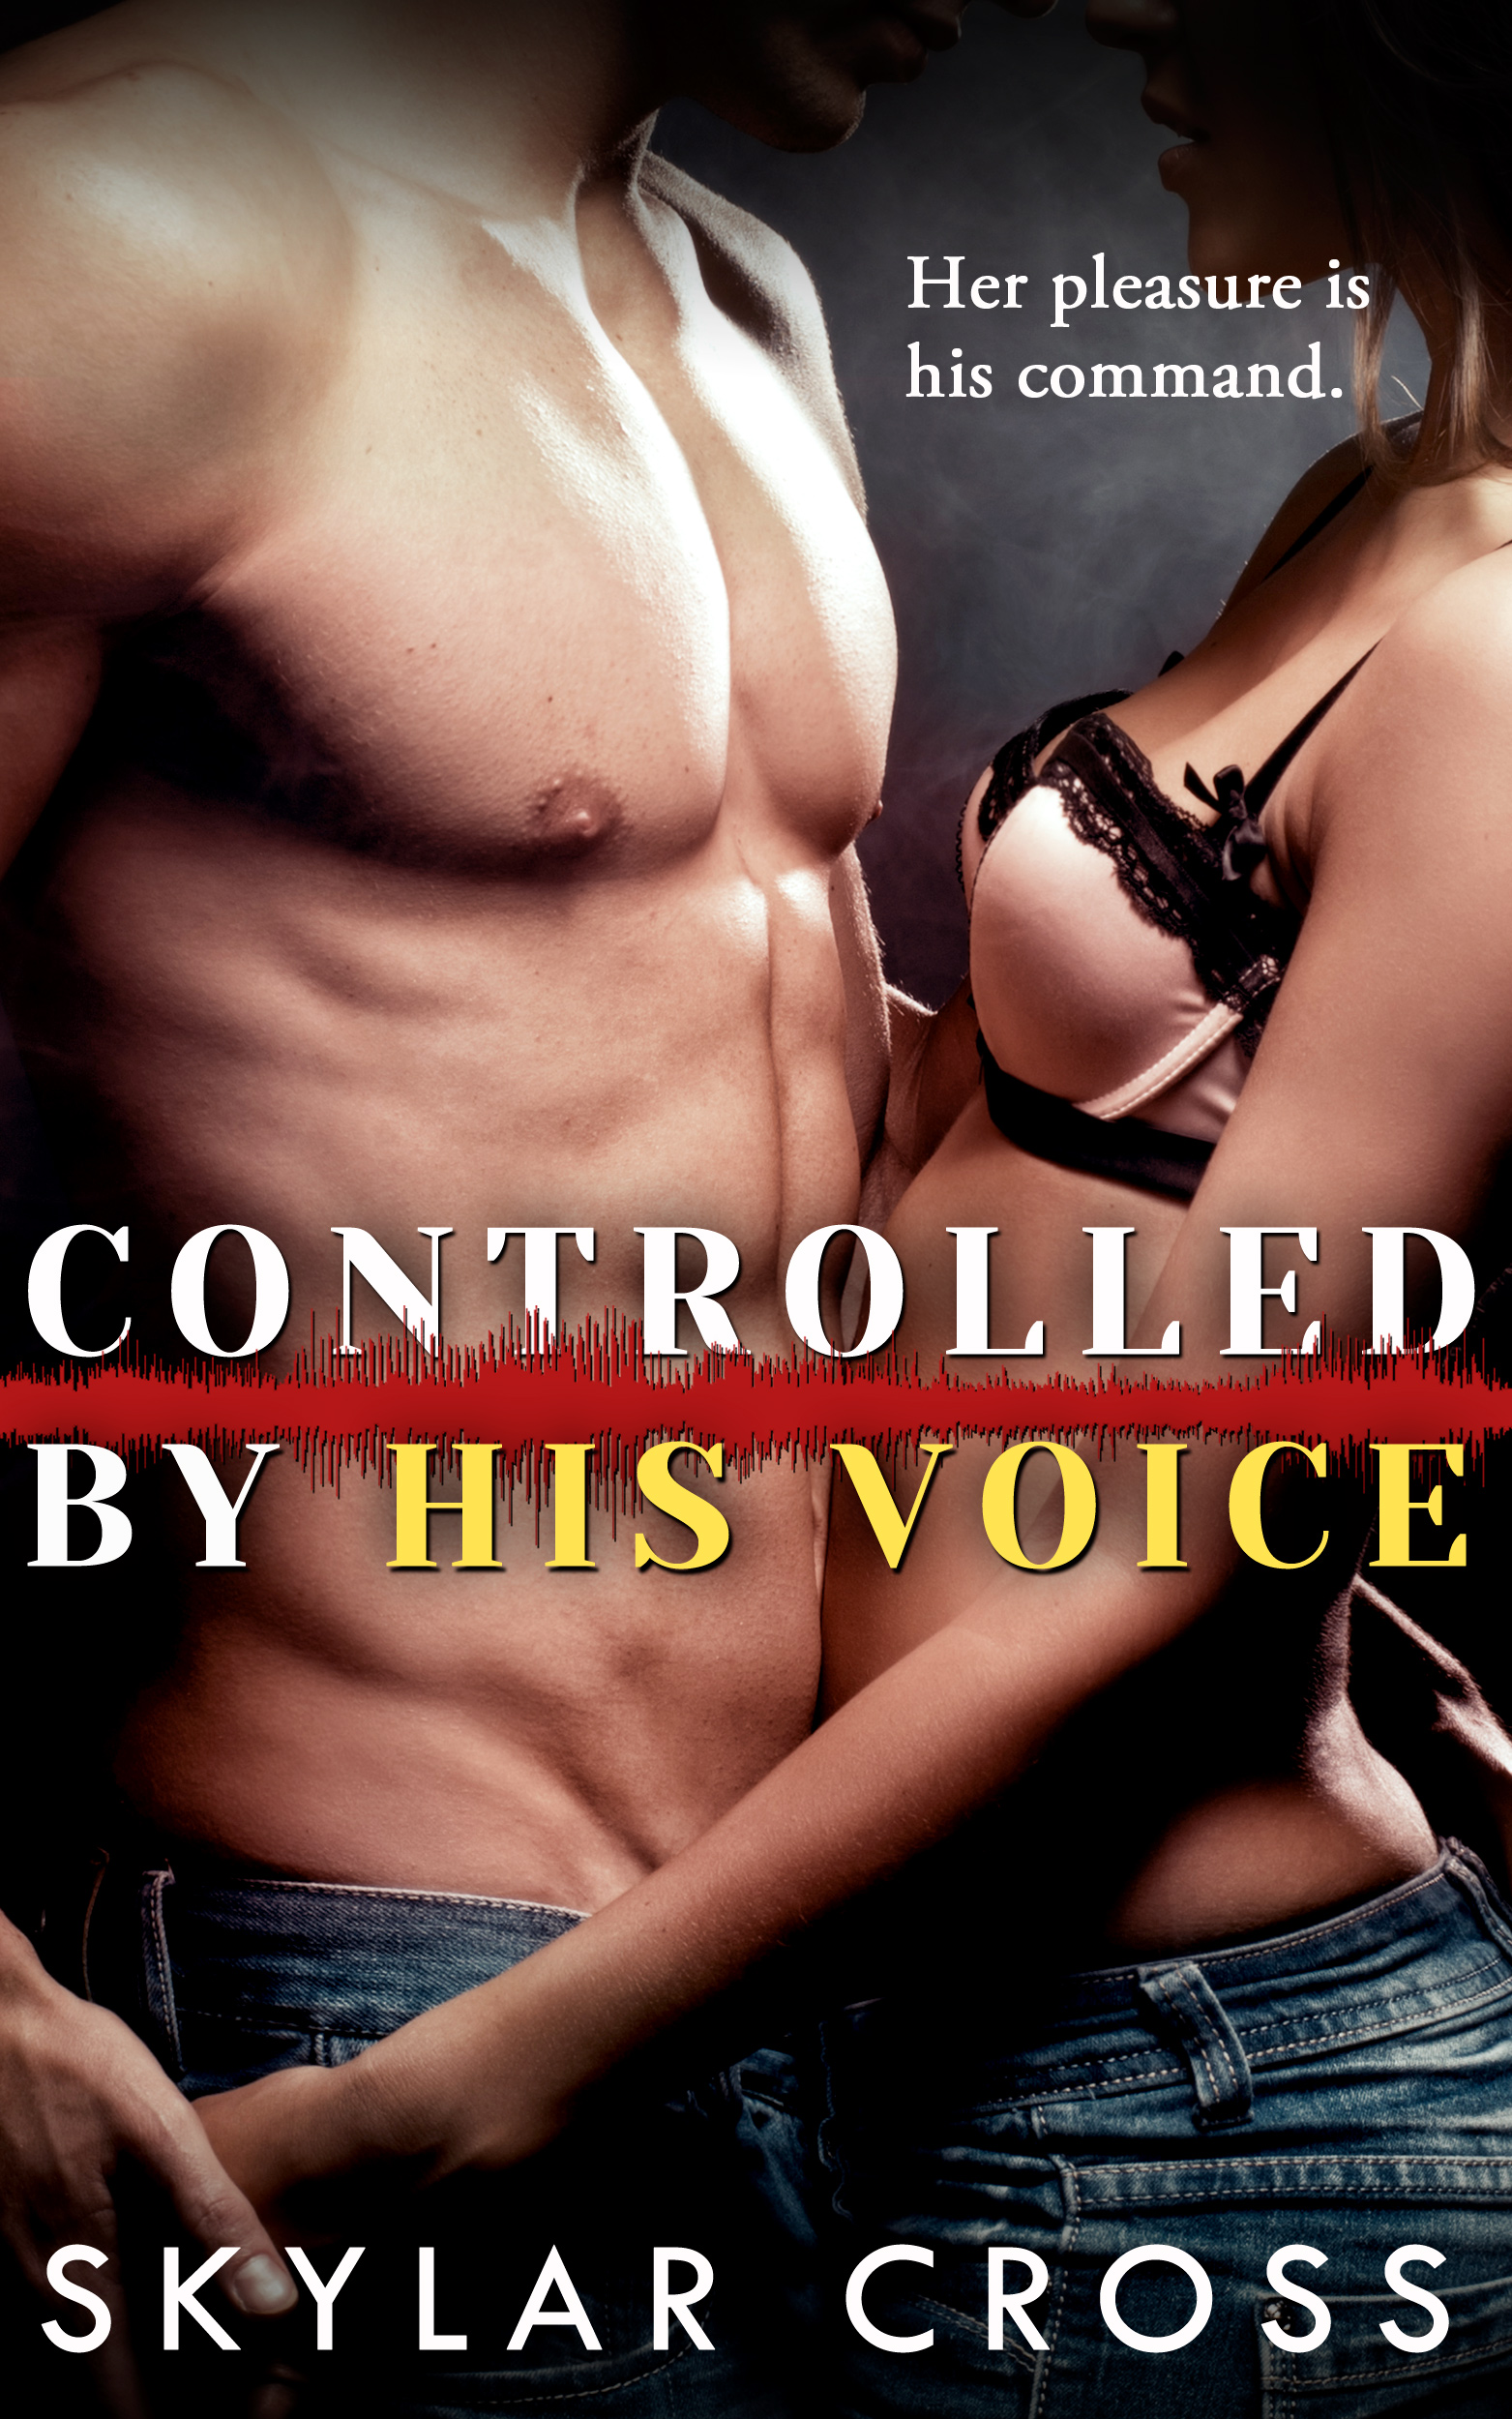 Controlled by her erotic